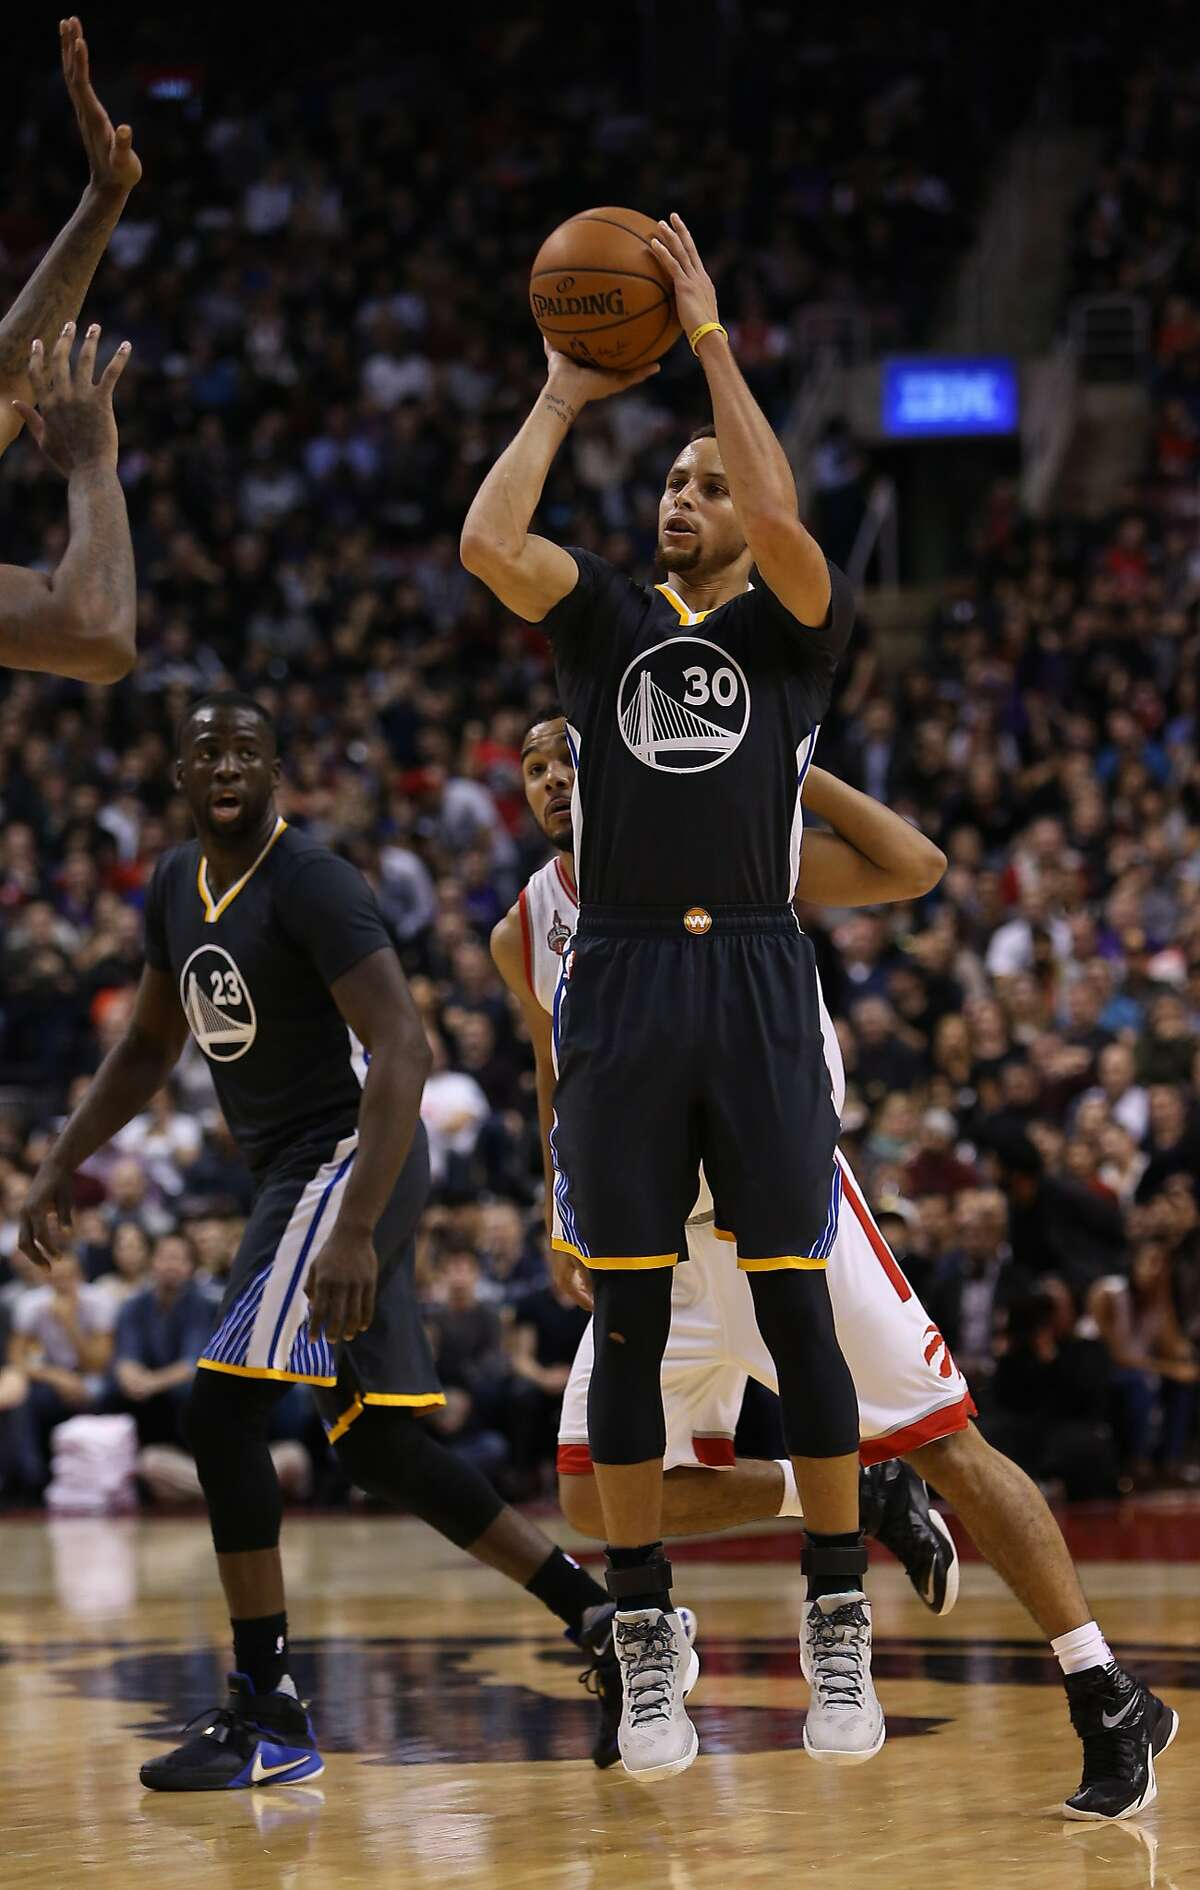 Stephen Curry #30 of the Golden State Warriors shoots the ball during an NBA game against the Toronto Raptors at the Air Canada Centre on December 05, 2015 in Toronto, Ontario, Canada.